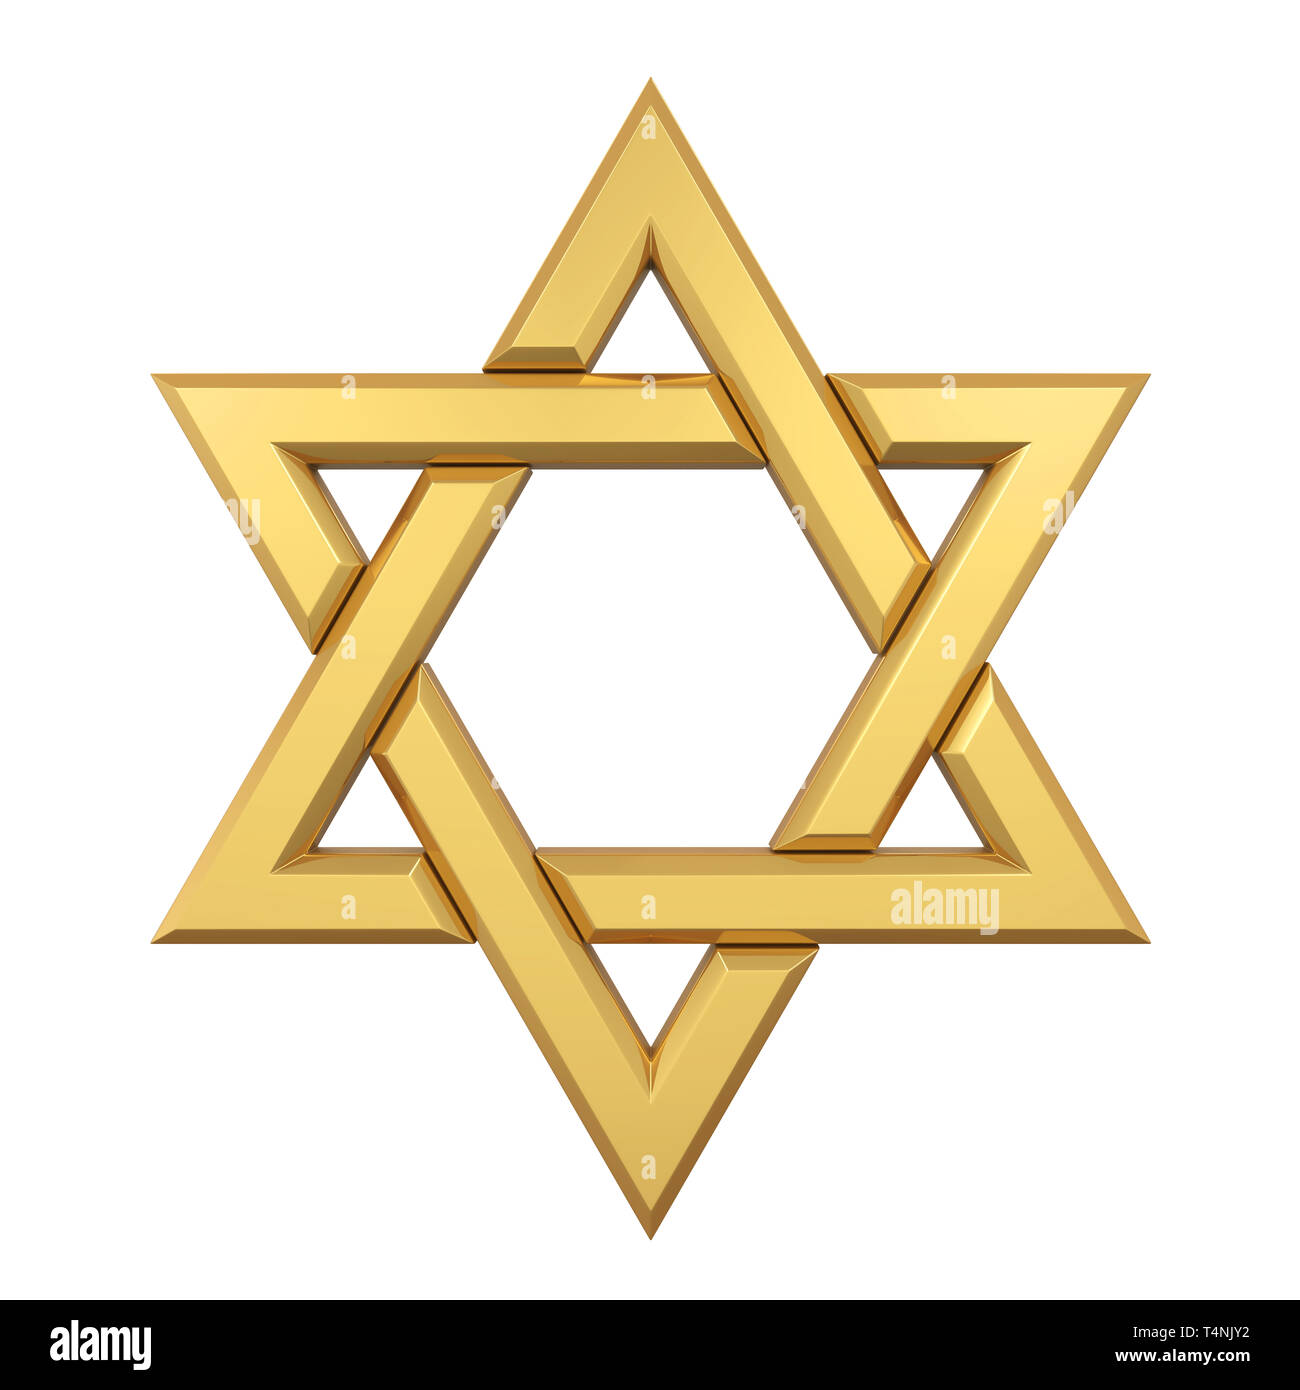 Star of David Isolated - Stock Image